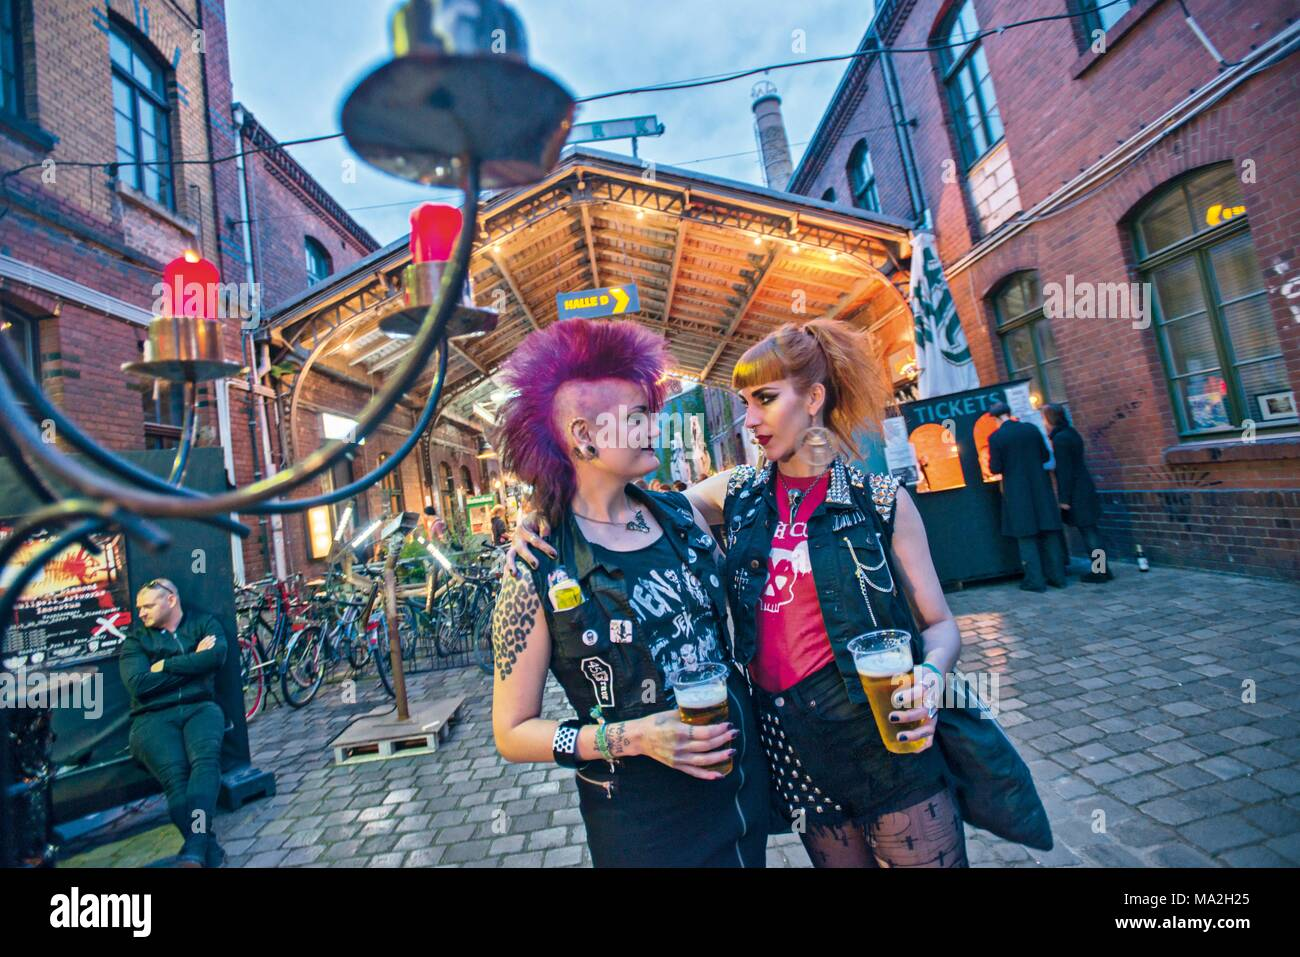 Wave-Gotik-Festival: two female punks - Stock Image